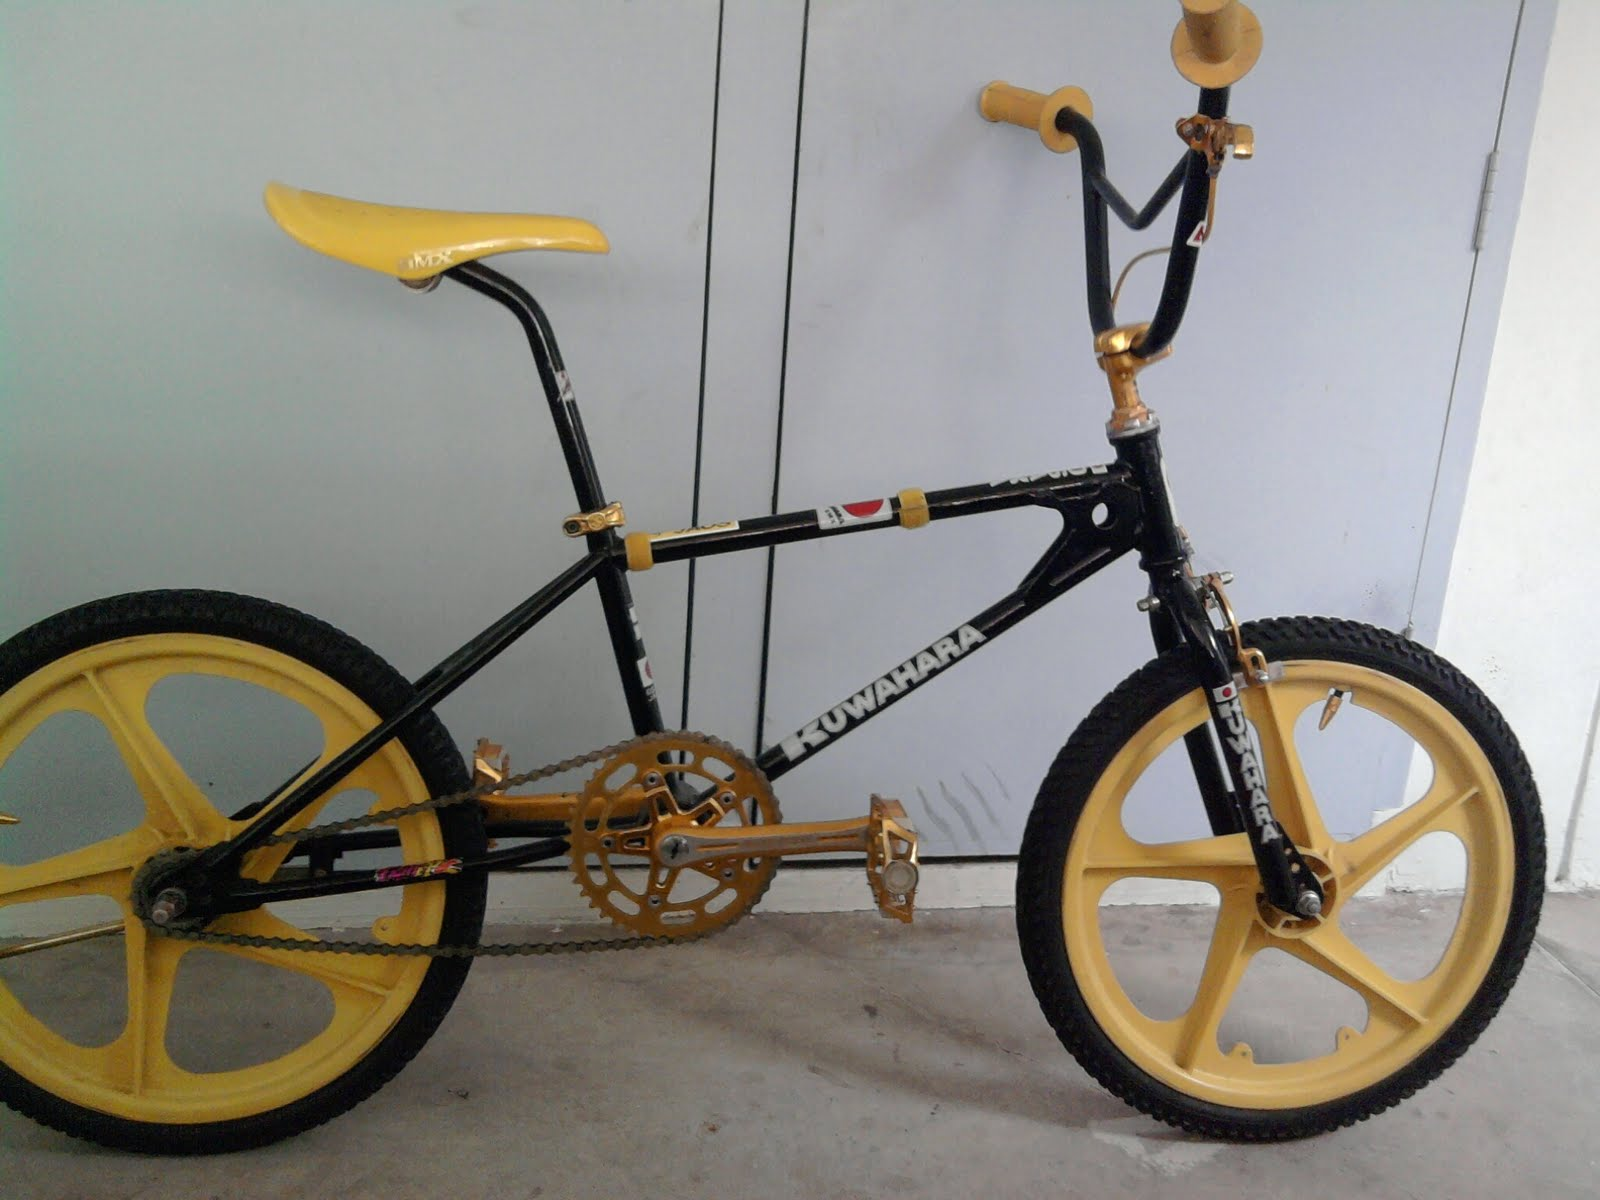 hassan 39 s old school bmx bicycles. Black Bedroom Furniture Sets. Home Design Ideas